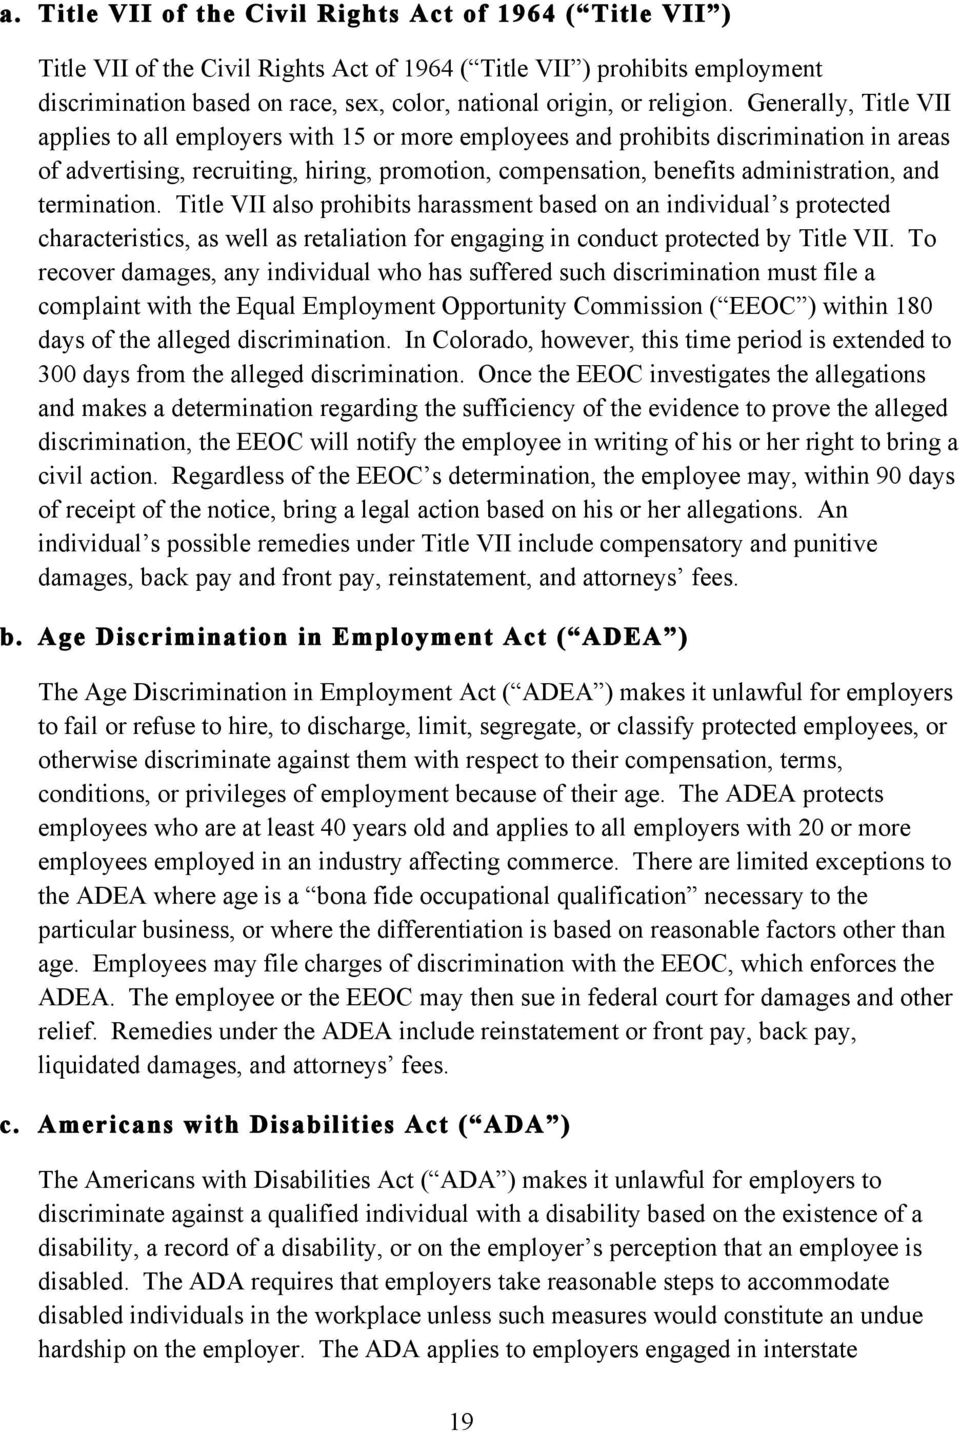 Generally, Title VII applies to all employers with 15 or more employees and prohibits discrimination in areas of advertising, recruiting, hiring, promotion, compensation, benefits administration, and